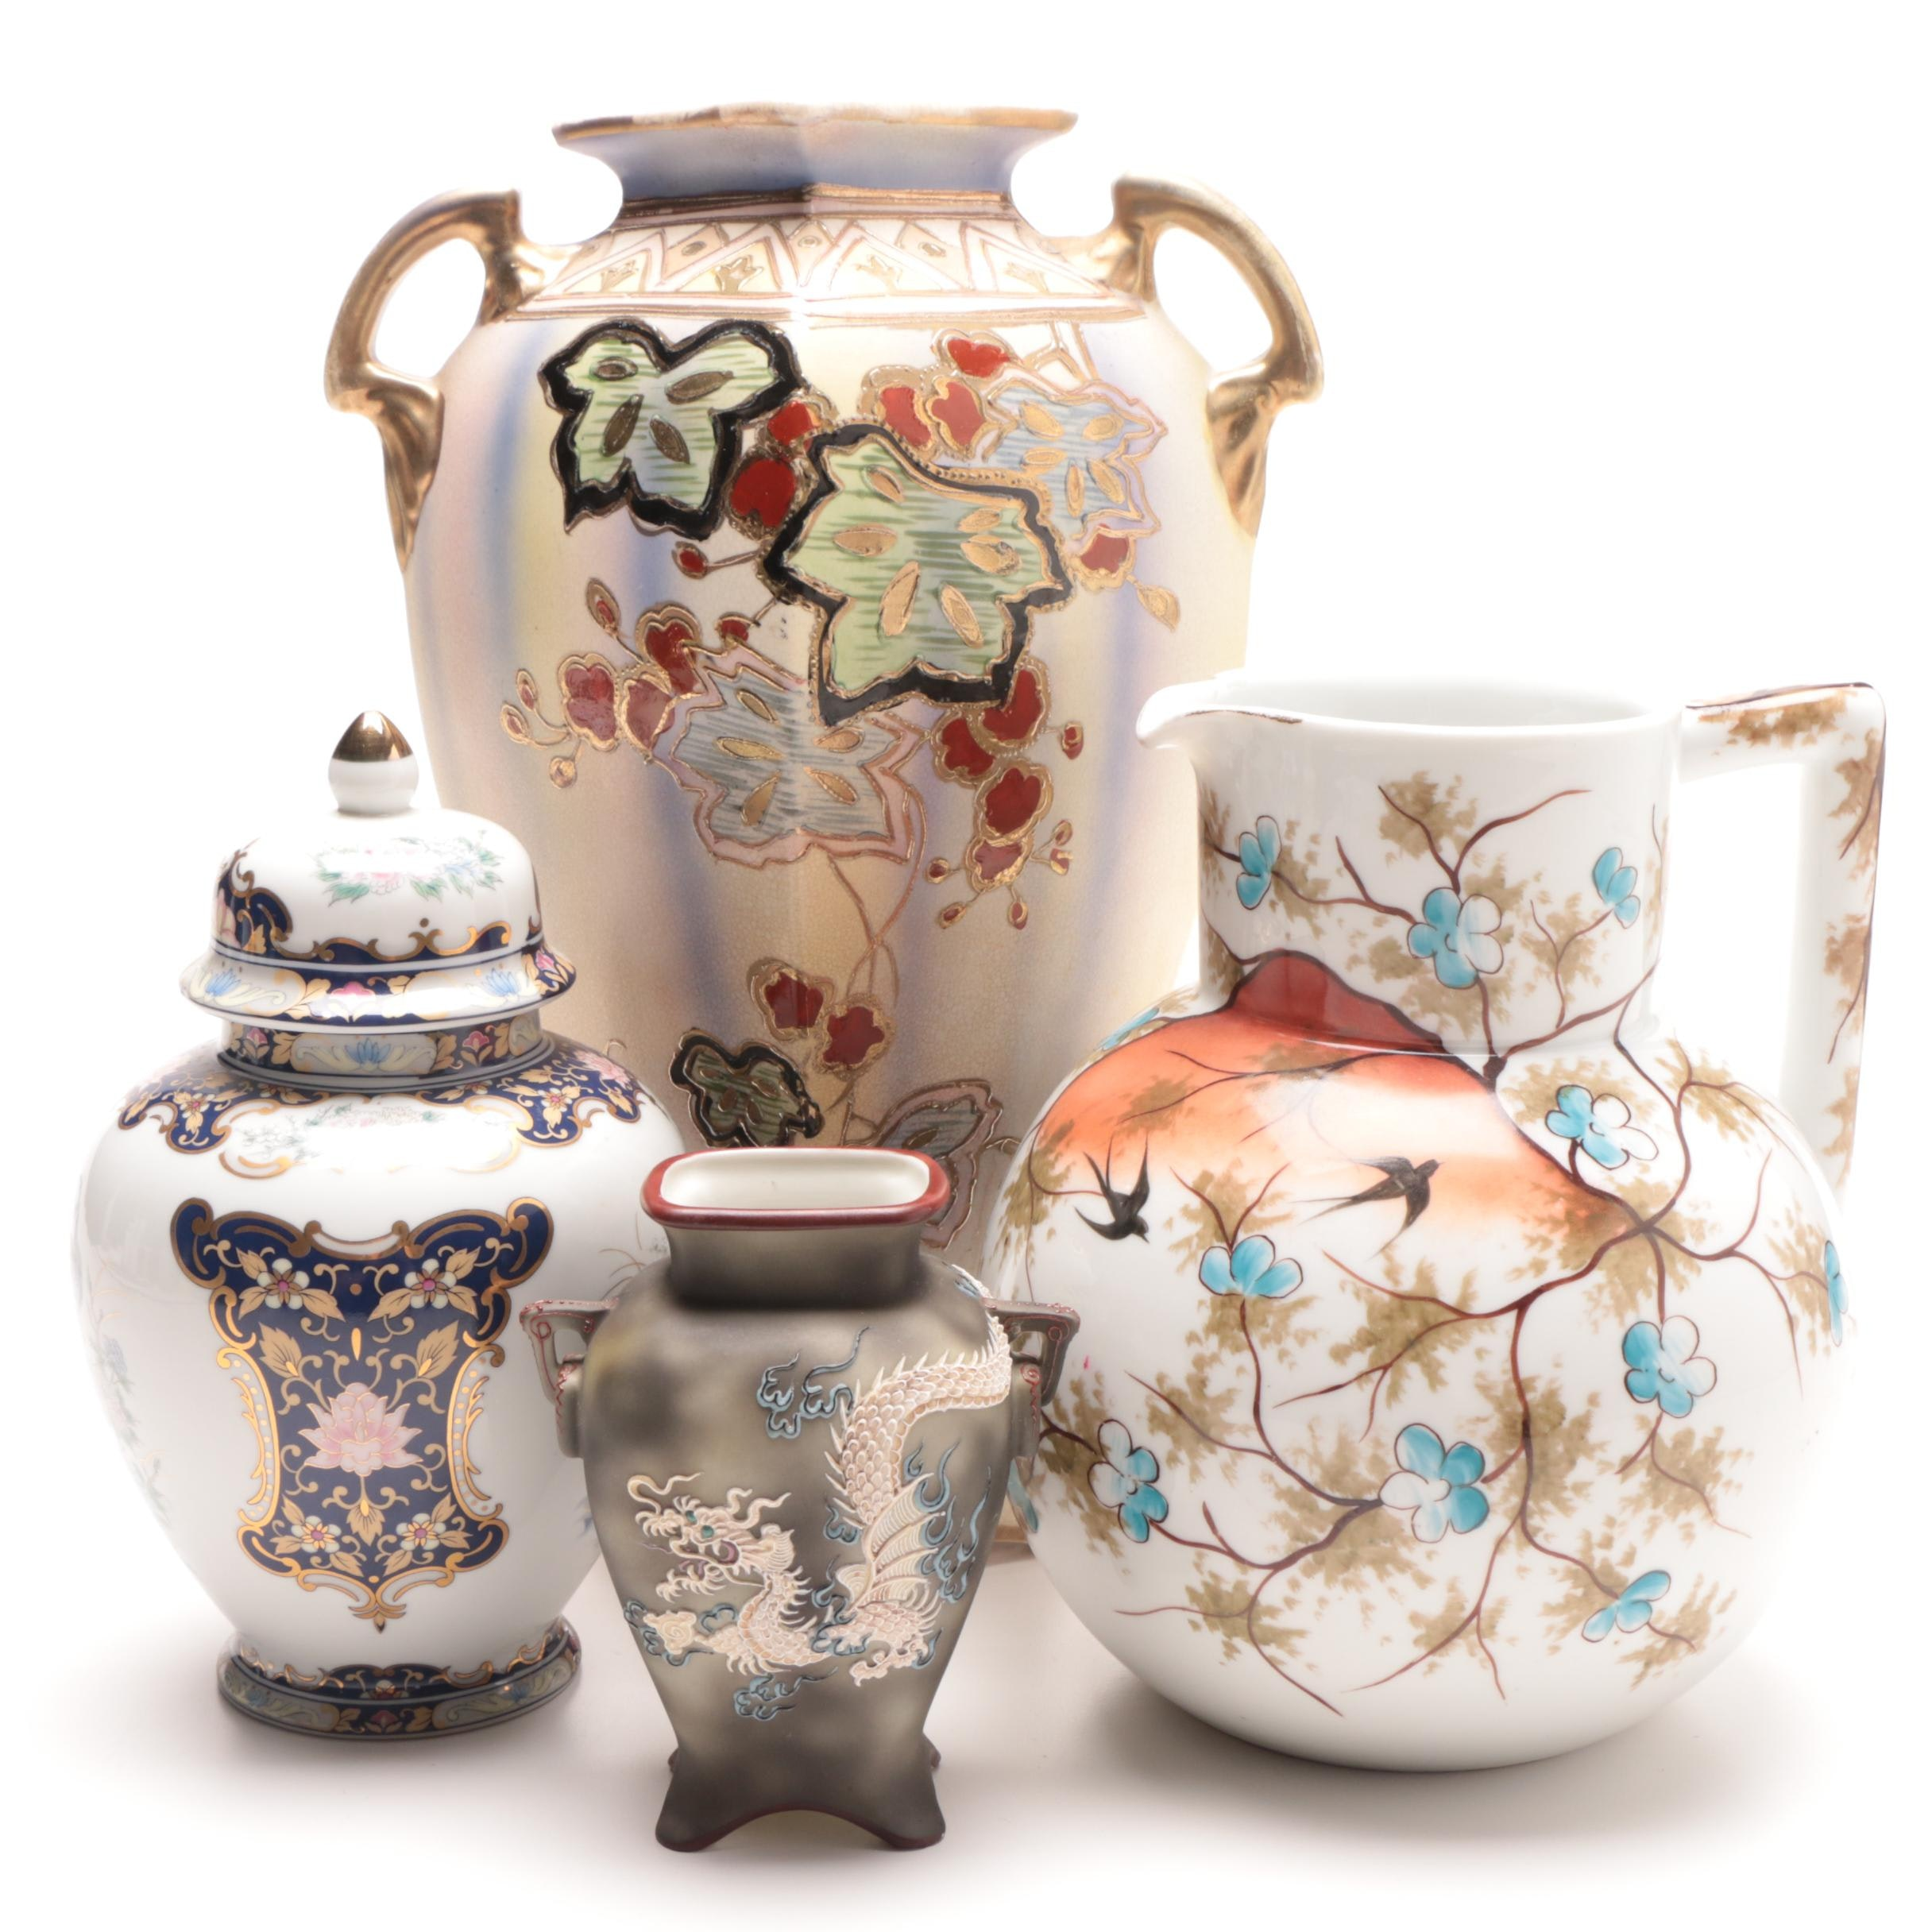 Group of Ceramic Vases and Decor